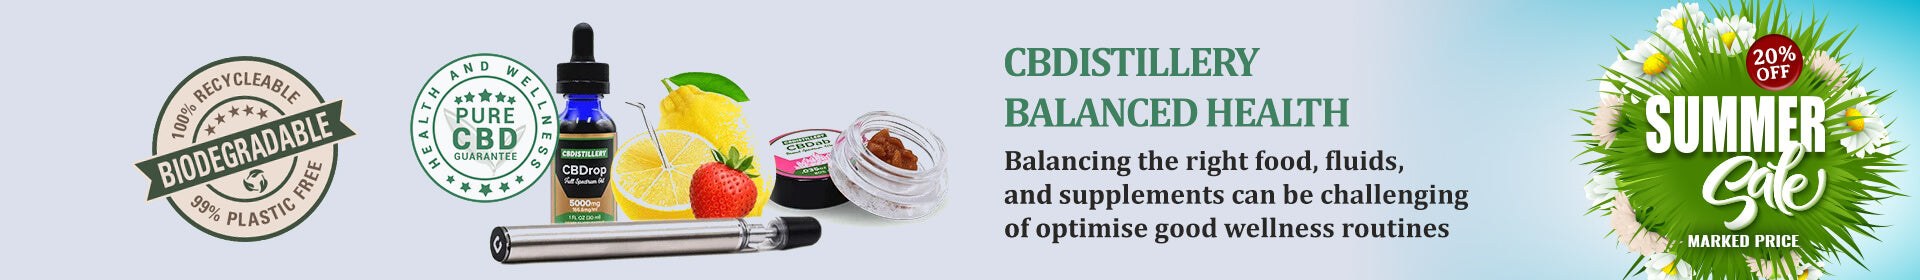 CBD Accessories & Products